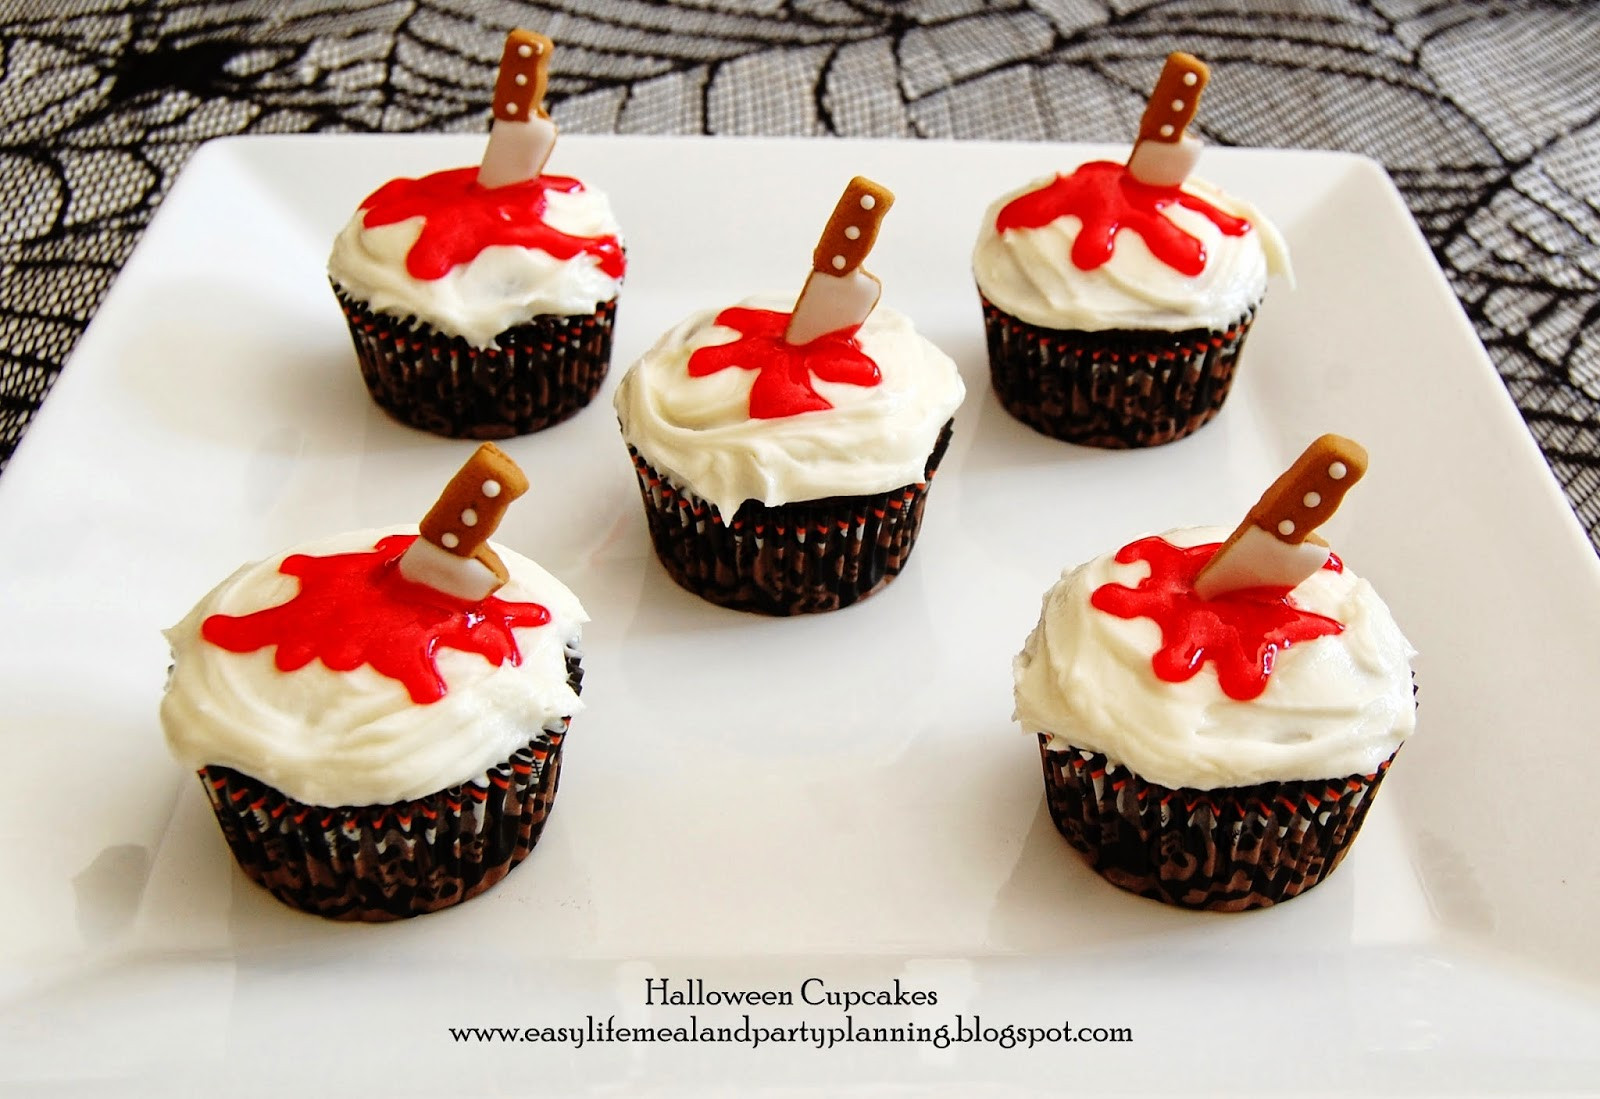 Halloween Cakes And Cupcakes  Easy Life Meal and Party Planning October 2013